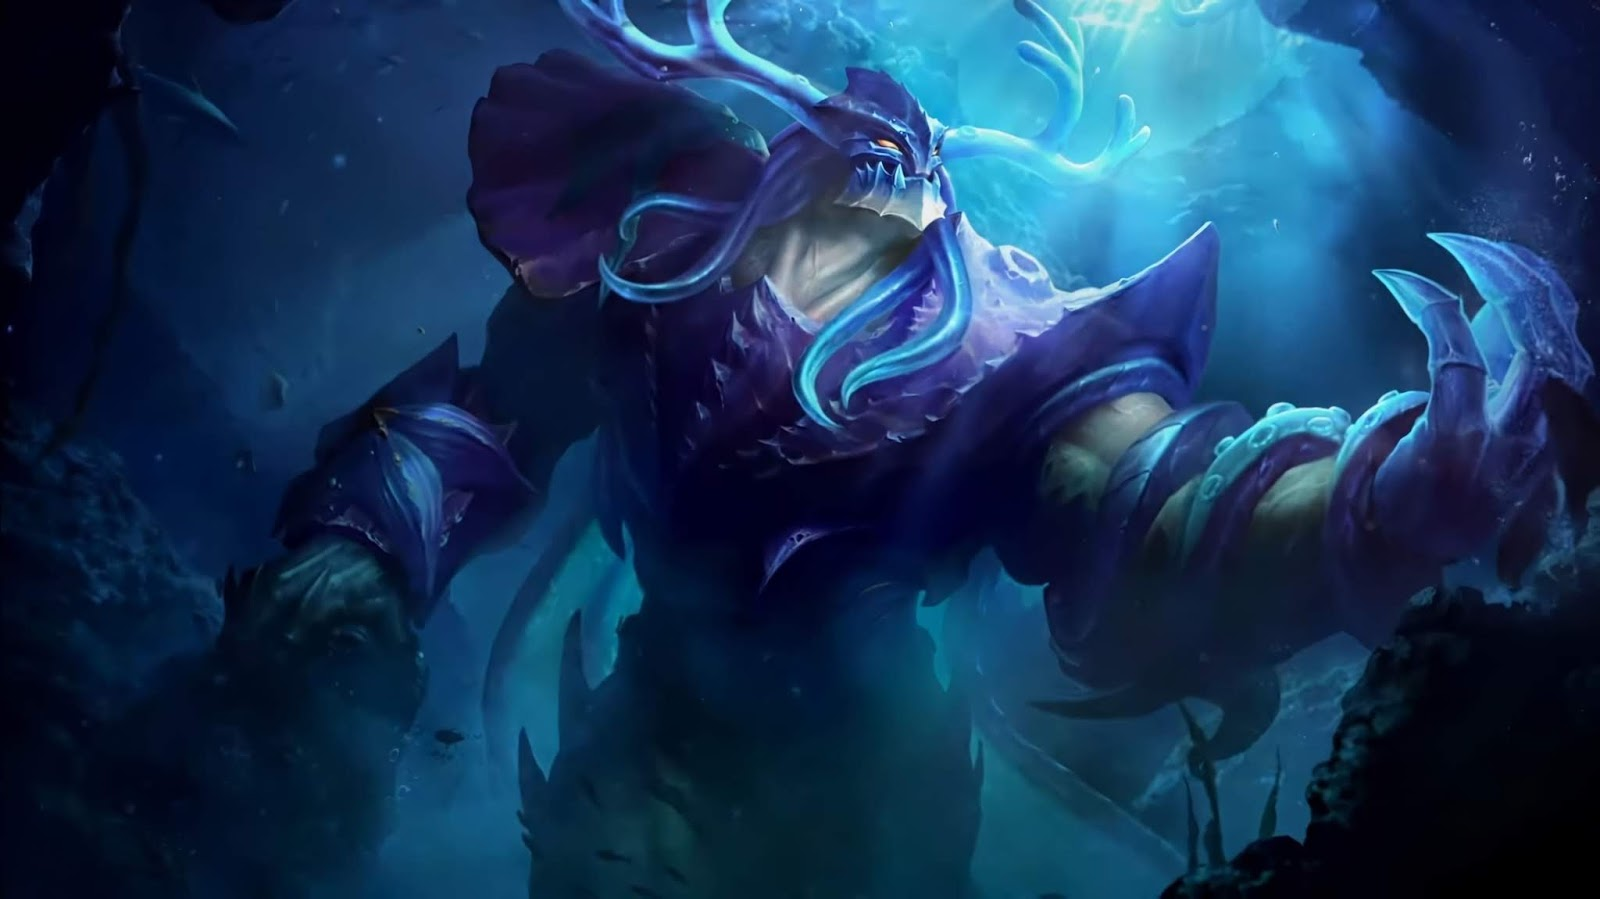 Wallpaper Belerick The Deep One Skin Mobile Legends HD for PC